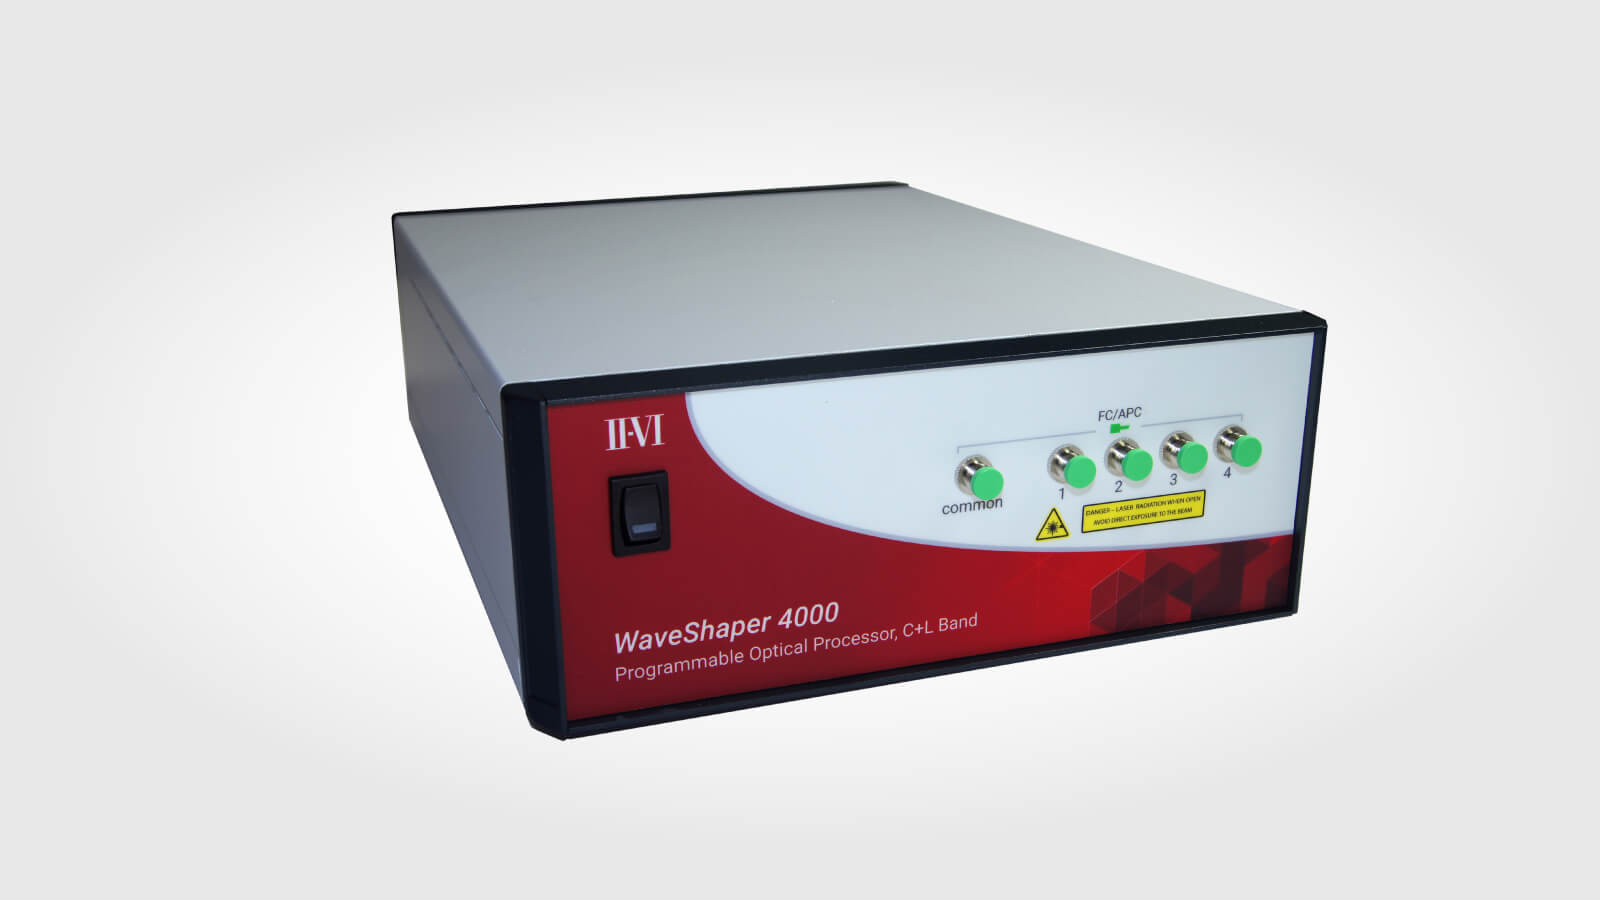 II-VI announces the expansion of WaveShaper programmable optical processor product line for Operation in the S- and Extended L-Bands